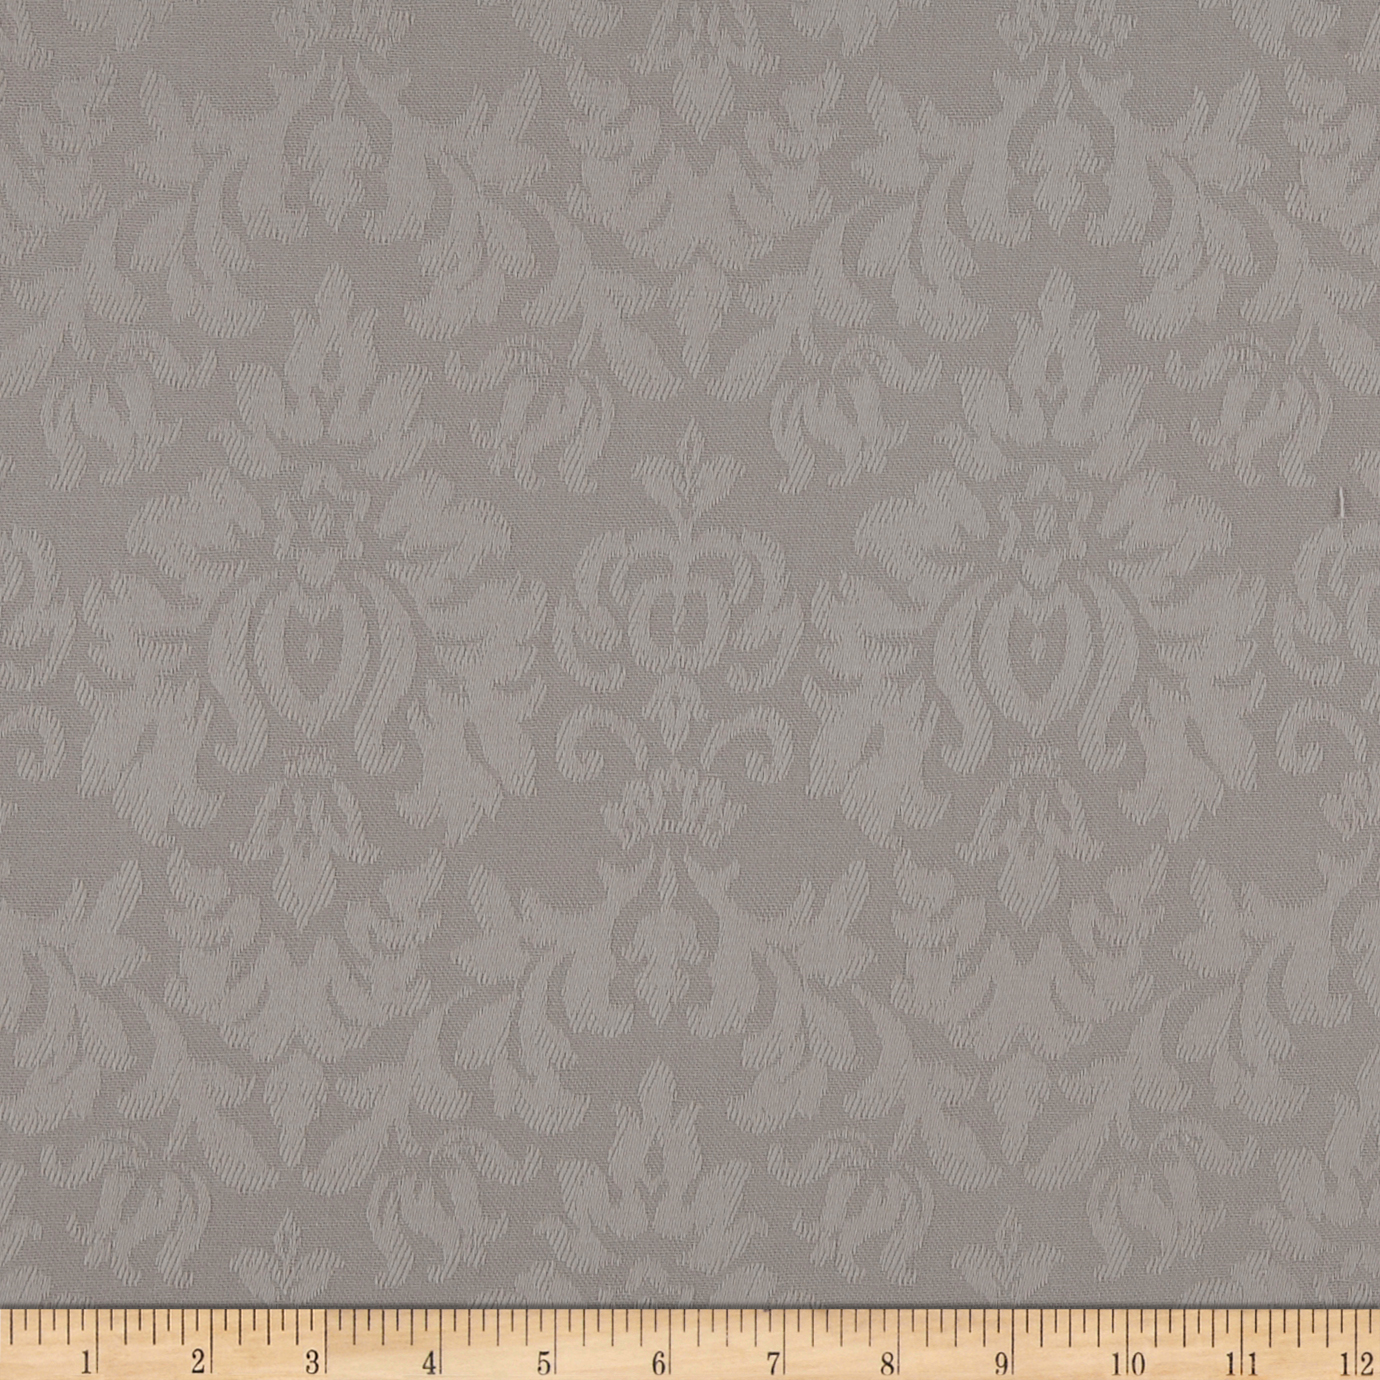 USA Ansley Home Decor Cotton Jacquard Solid Taupe Fabric